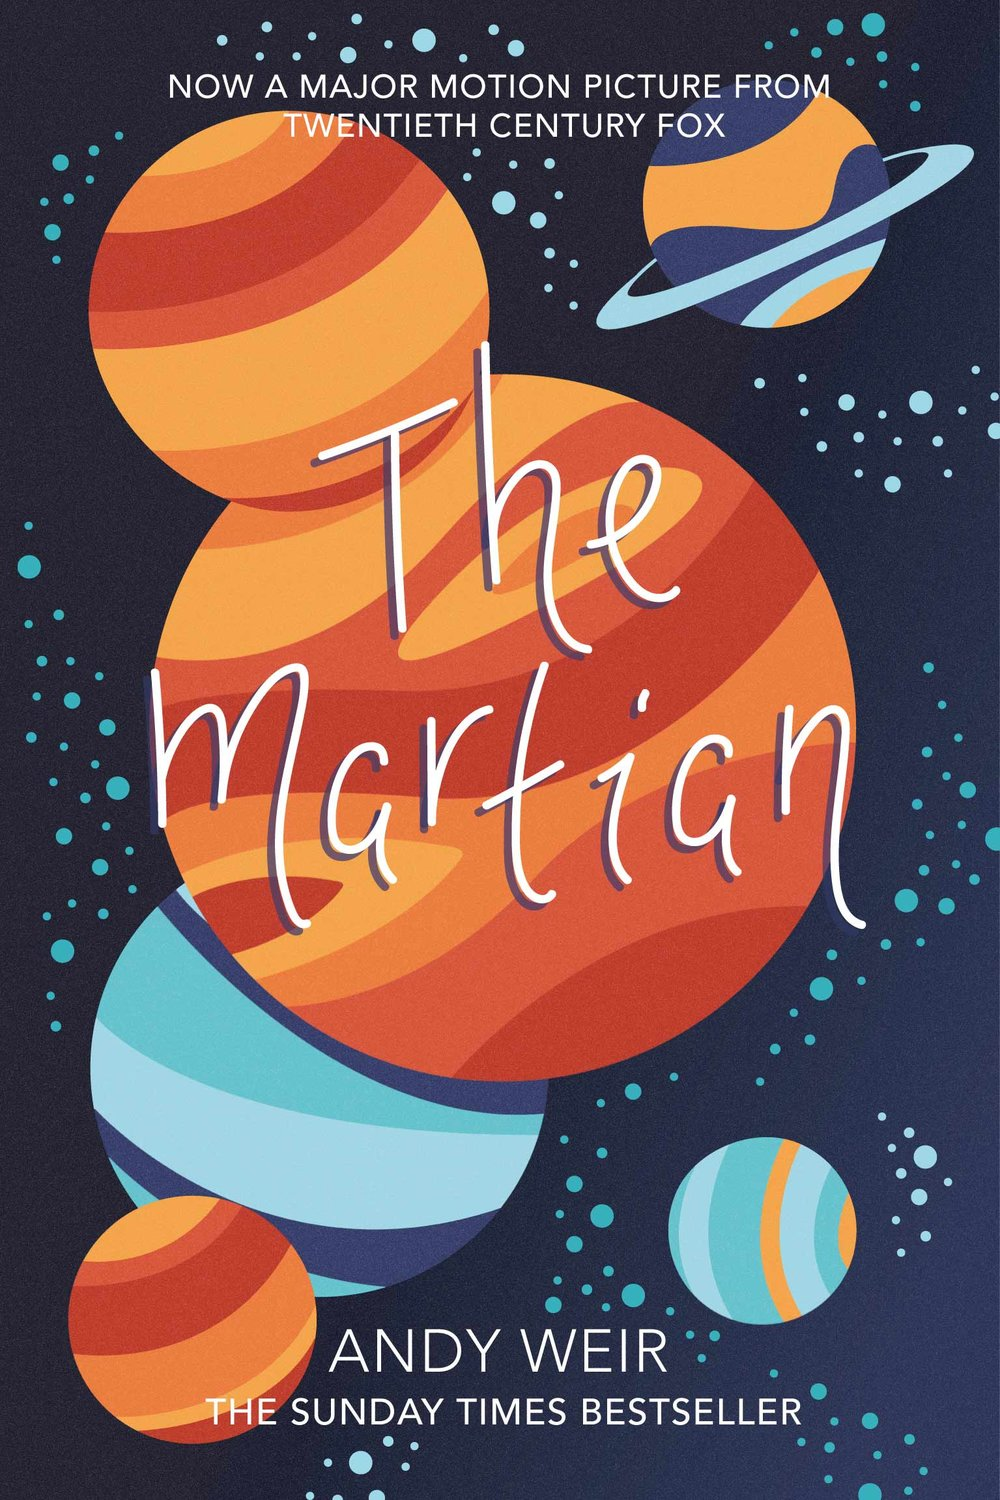 The Martian book design, planets and stars.